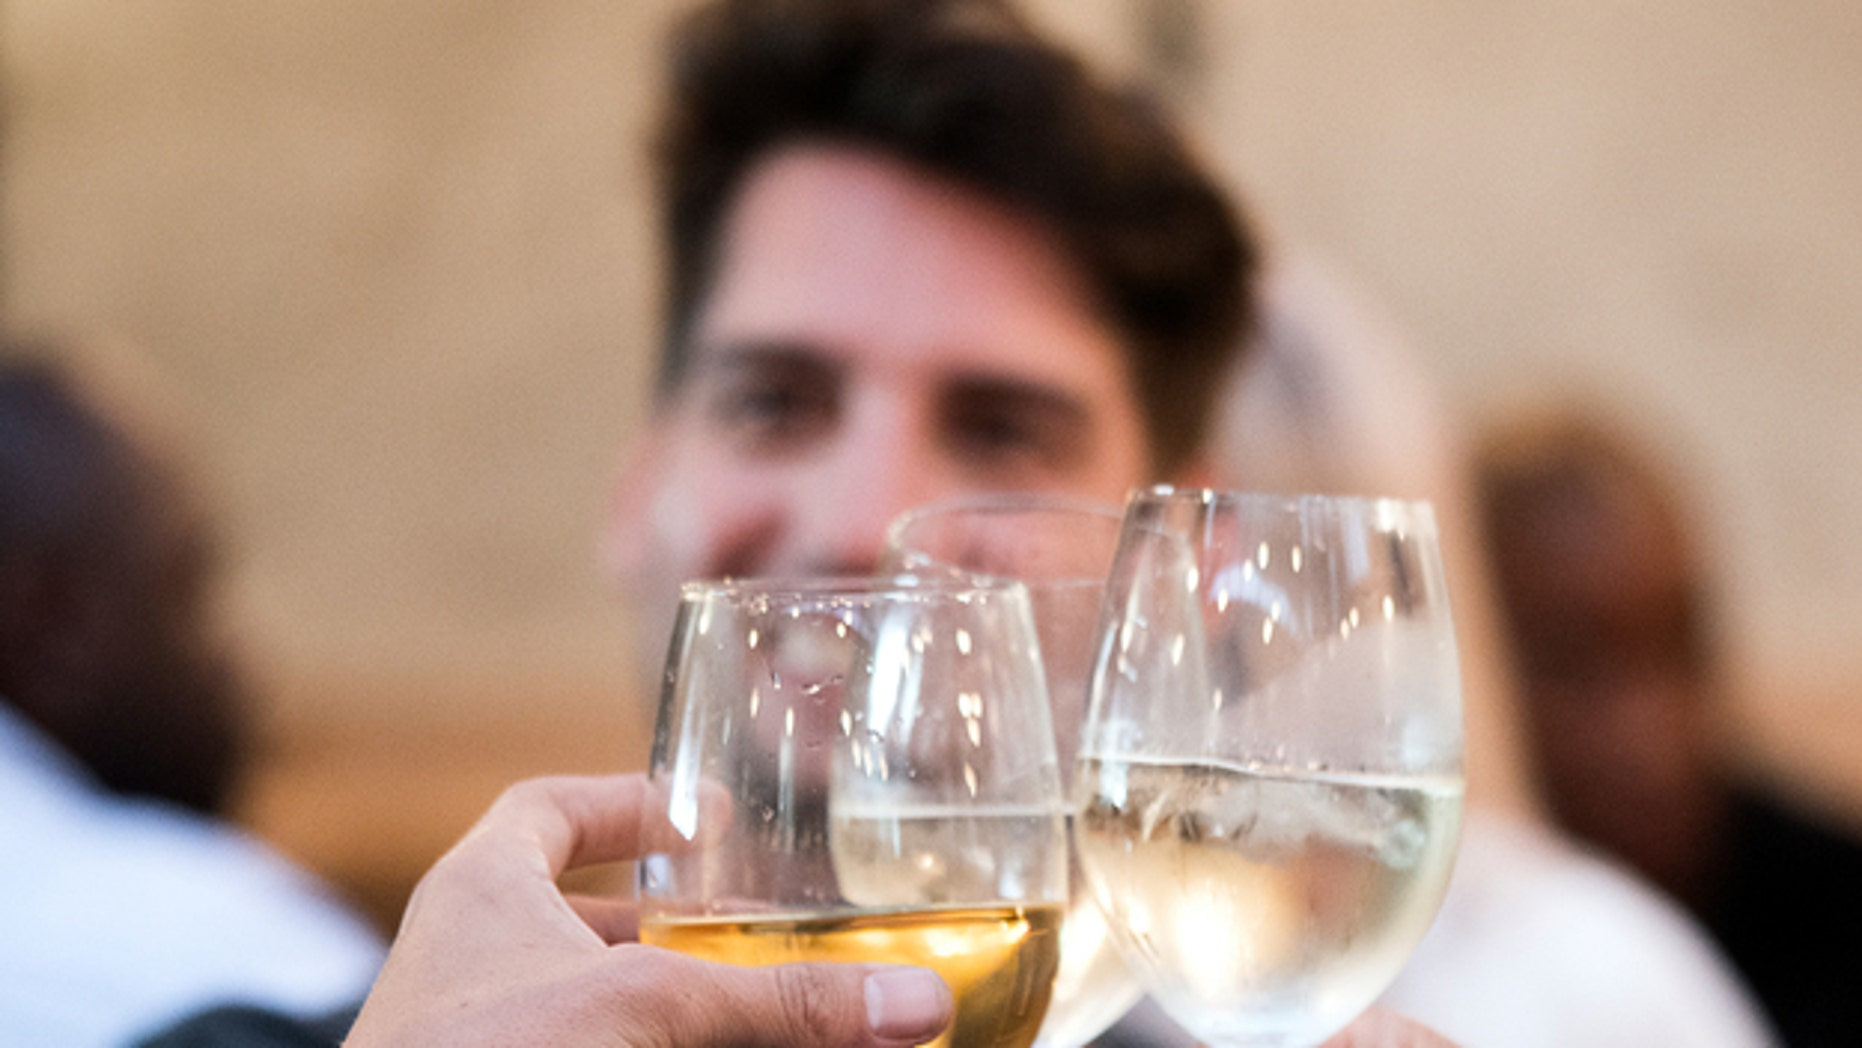 Don't want to get tipsy? Avoid using a bigger glass.